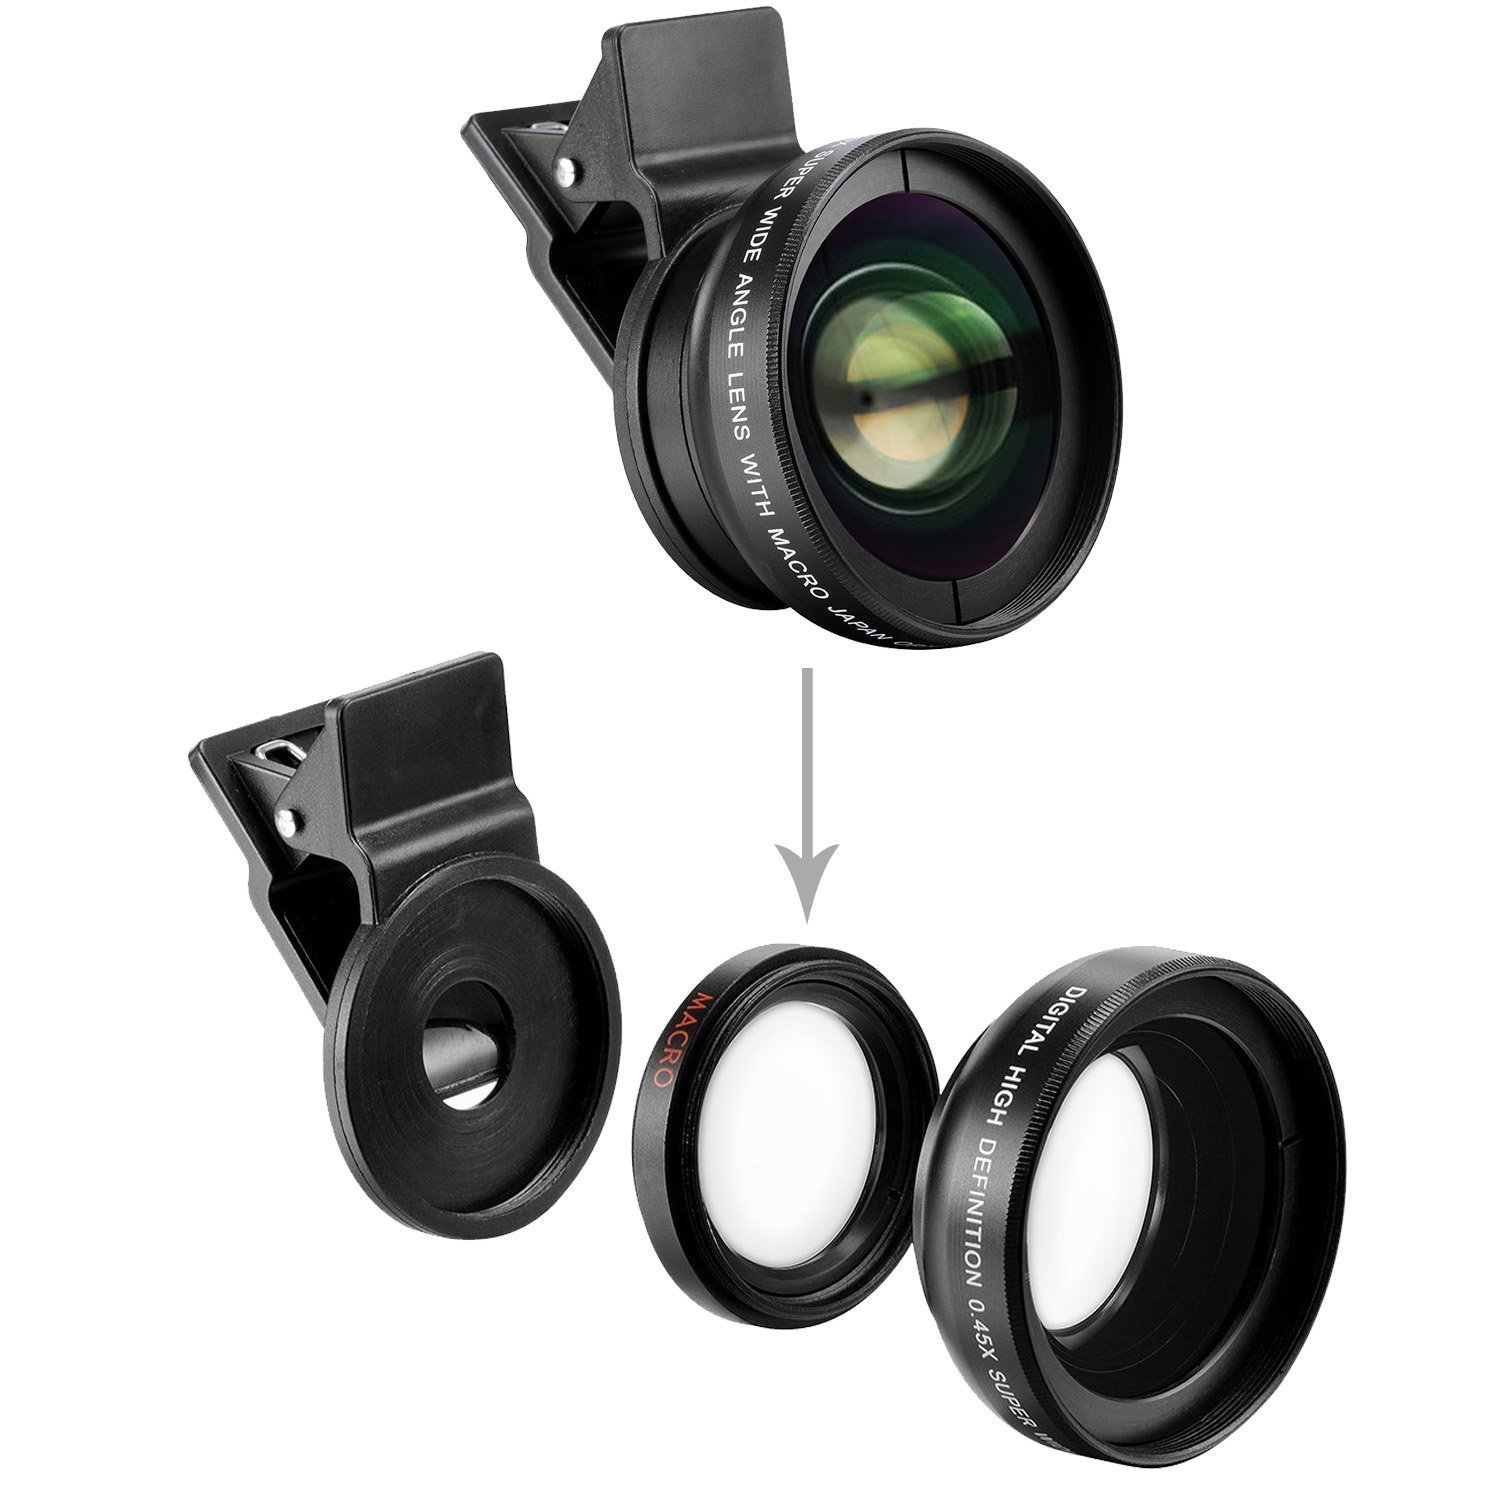 SOCIALITE Professional HD Camera Photo & Video Clip On Lens Kit for iPhone Smartphone 6s 7 8 X Plus Mobile Phone Android, & Samsung 0.45x Super Wide Angle Lens 12.5x Macro by Socialite (Image #4)